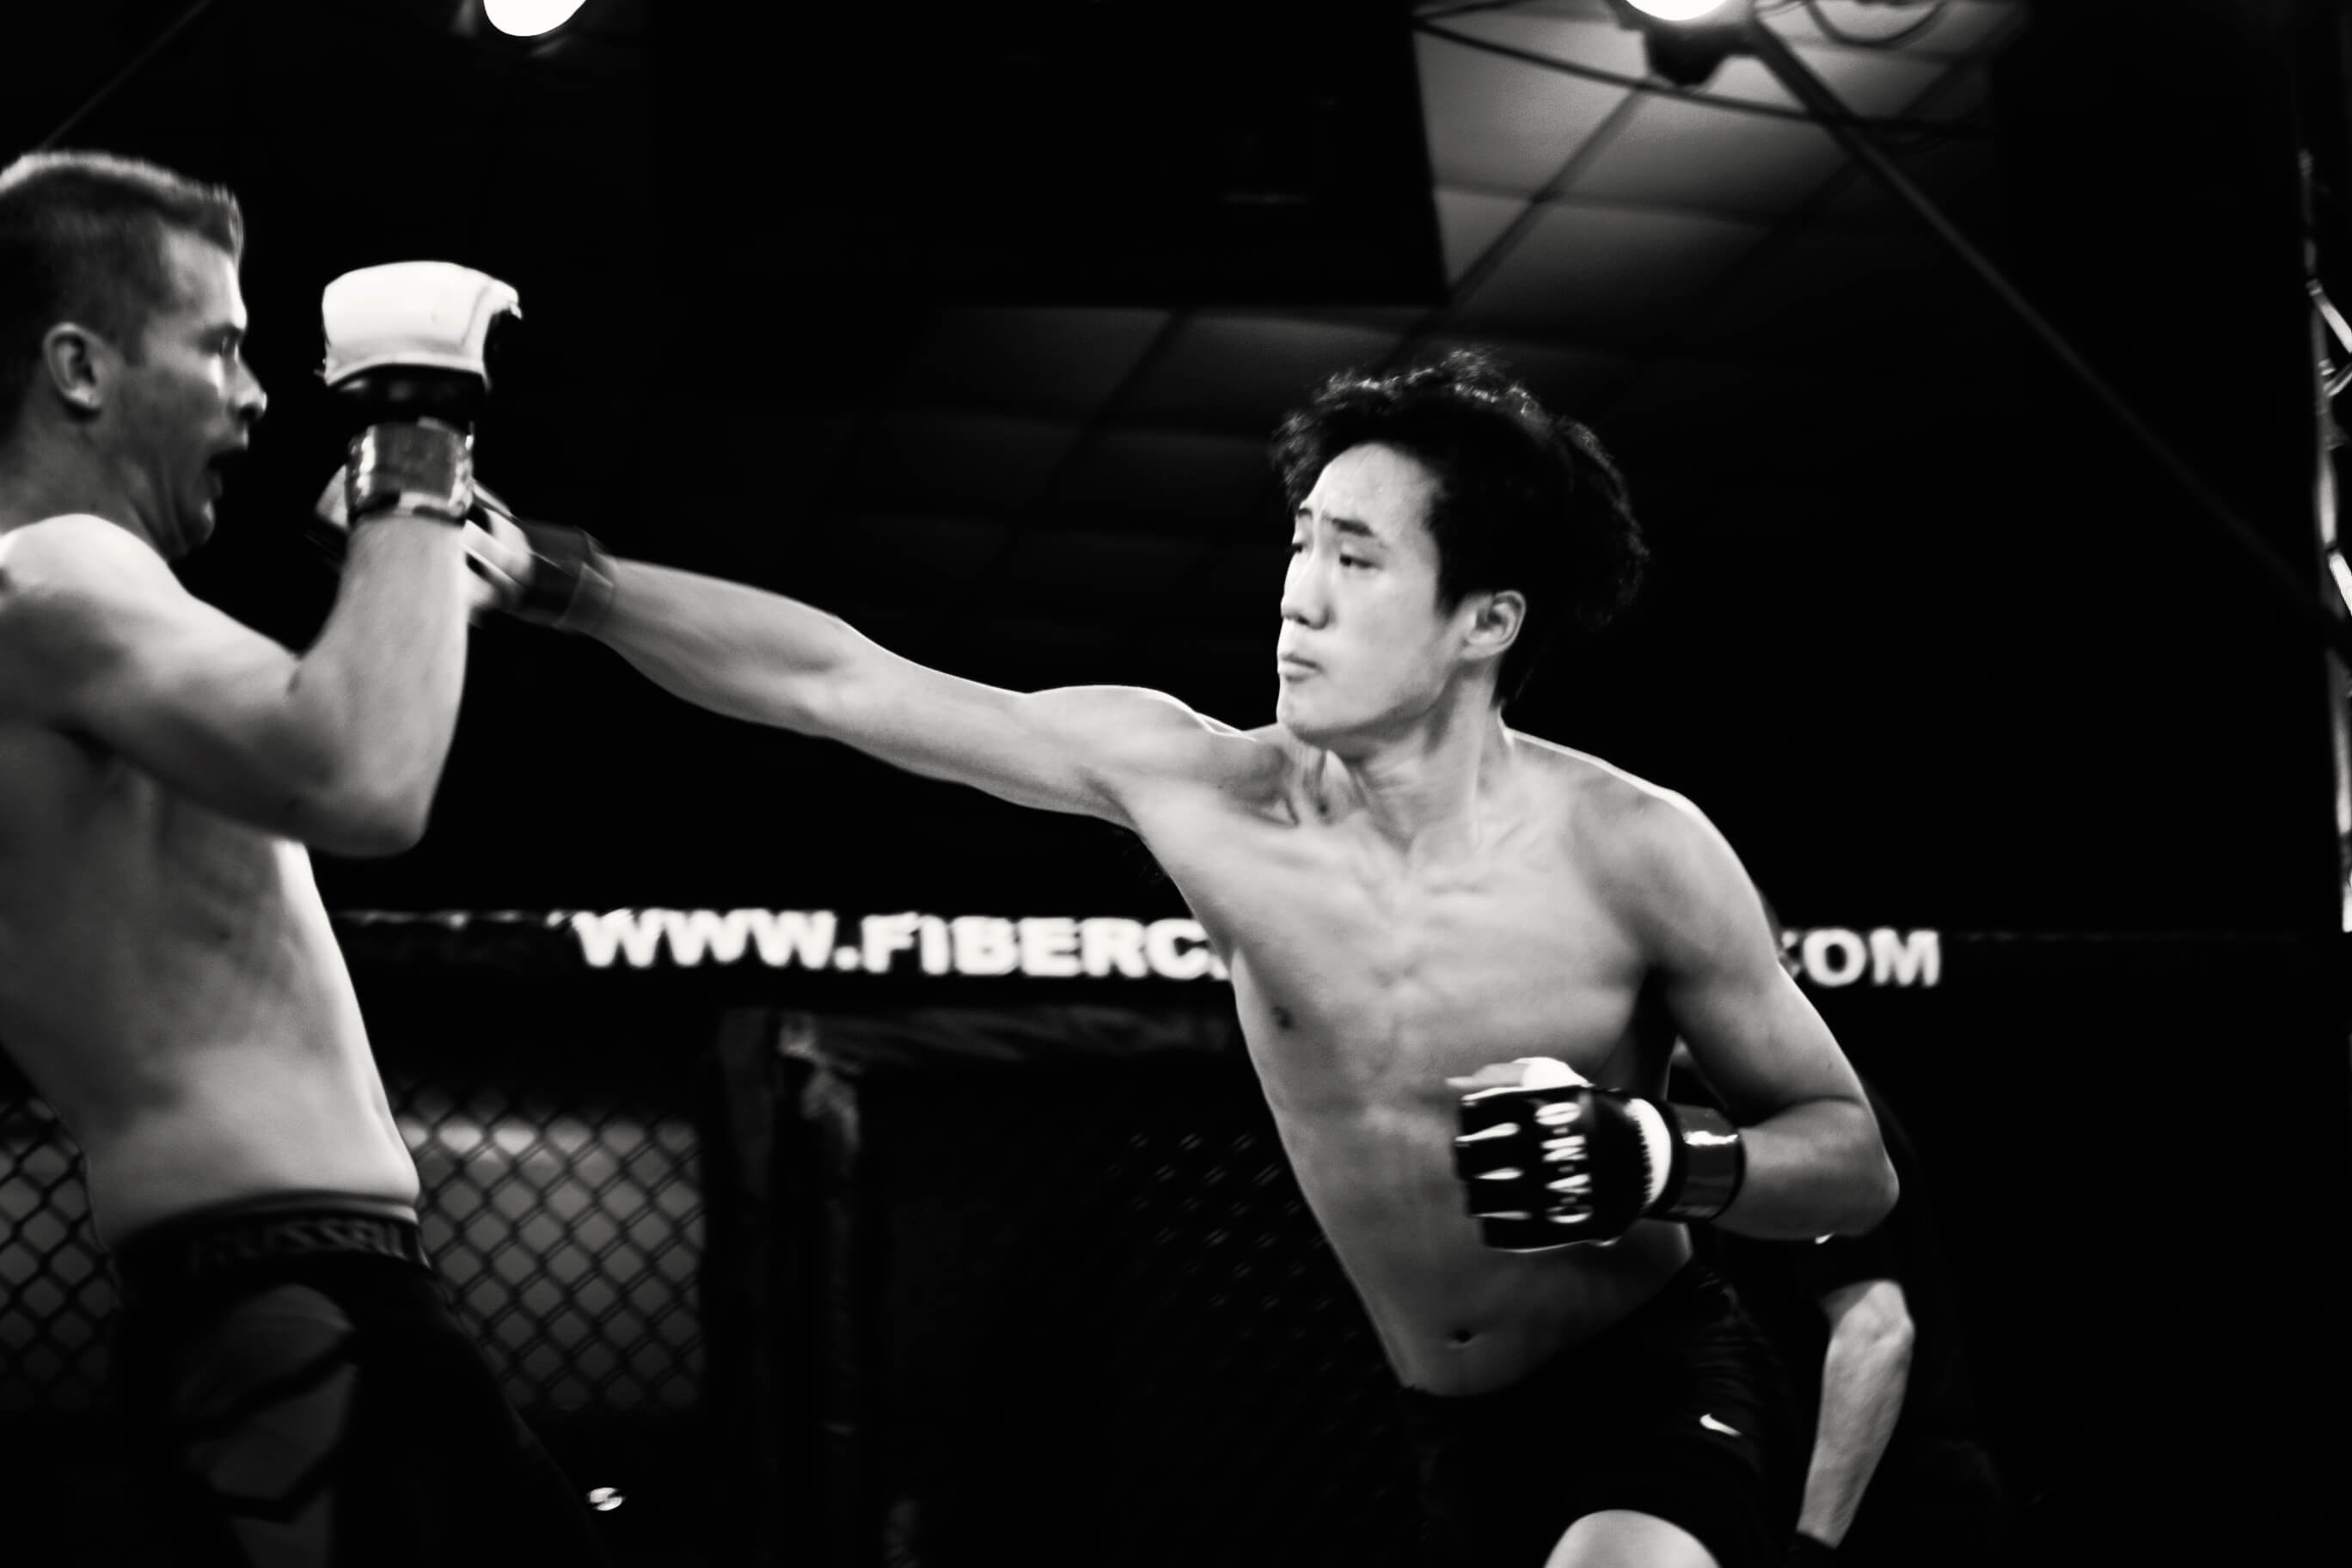 John Kim throwing a punch in the ring on CFL VIII